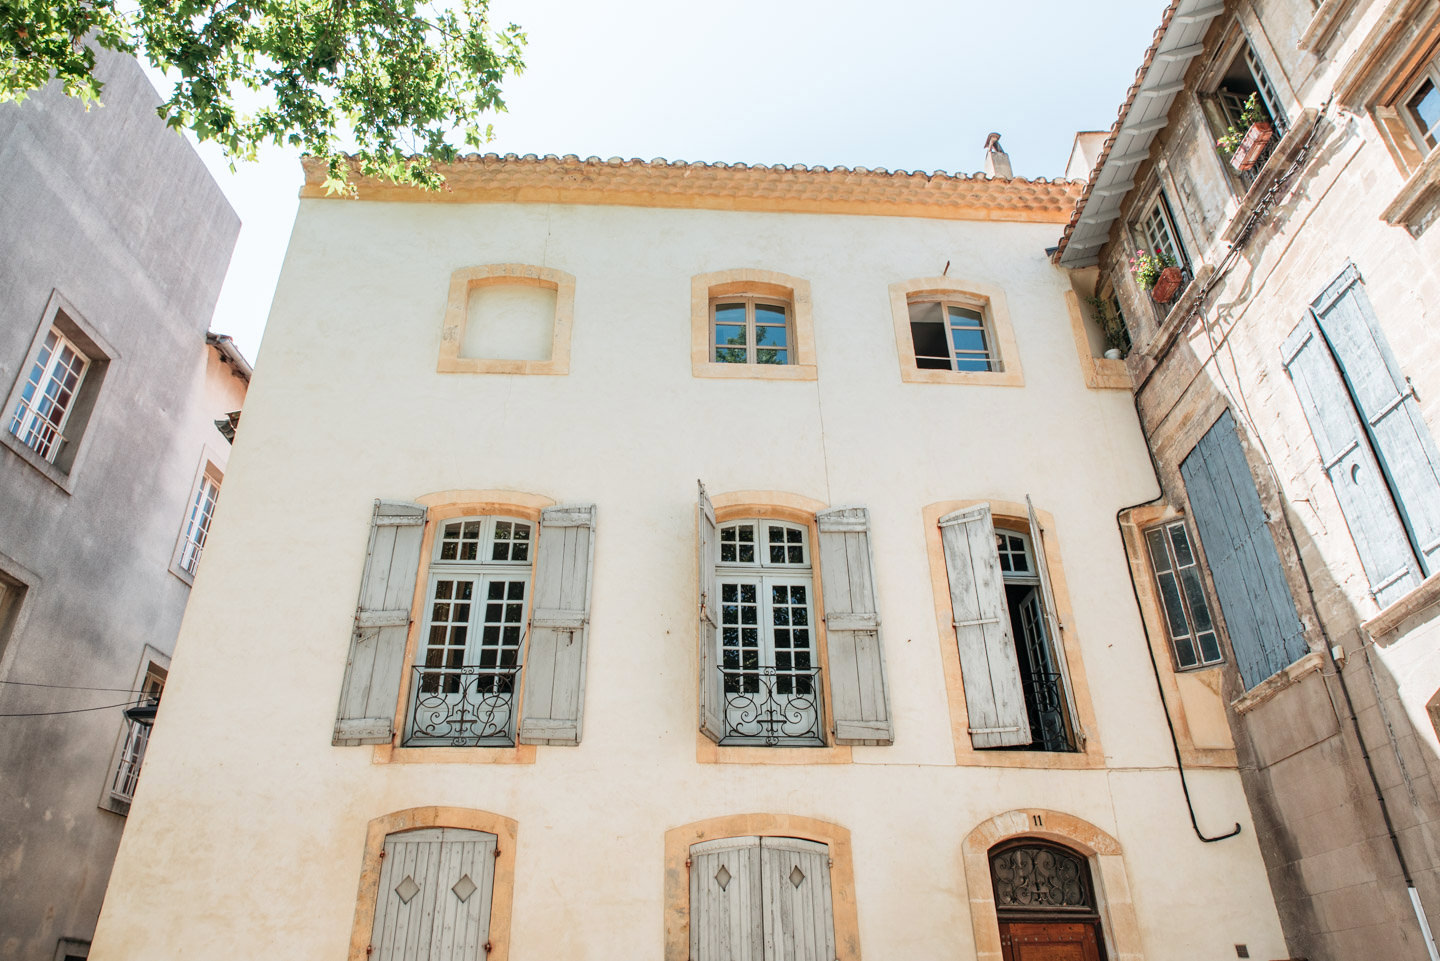 Blog-Mode-And-The-City-Lifestyle-Voyage-Avignon-Mas-Des-Herbes-Blanches-7